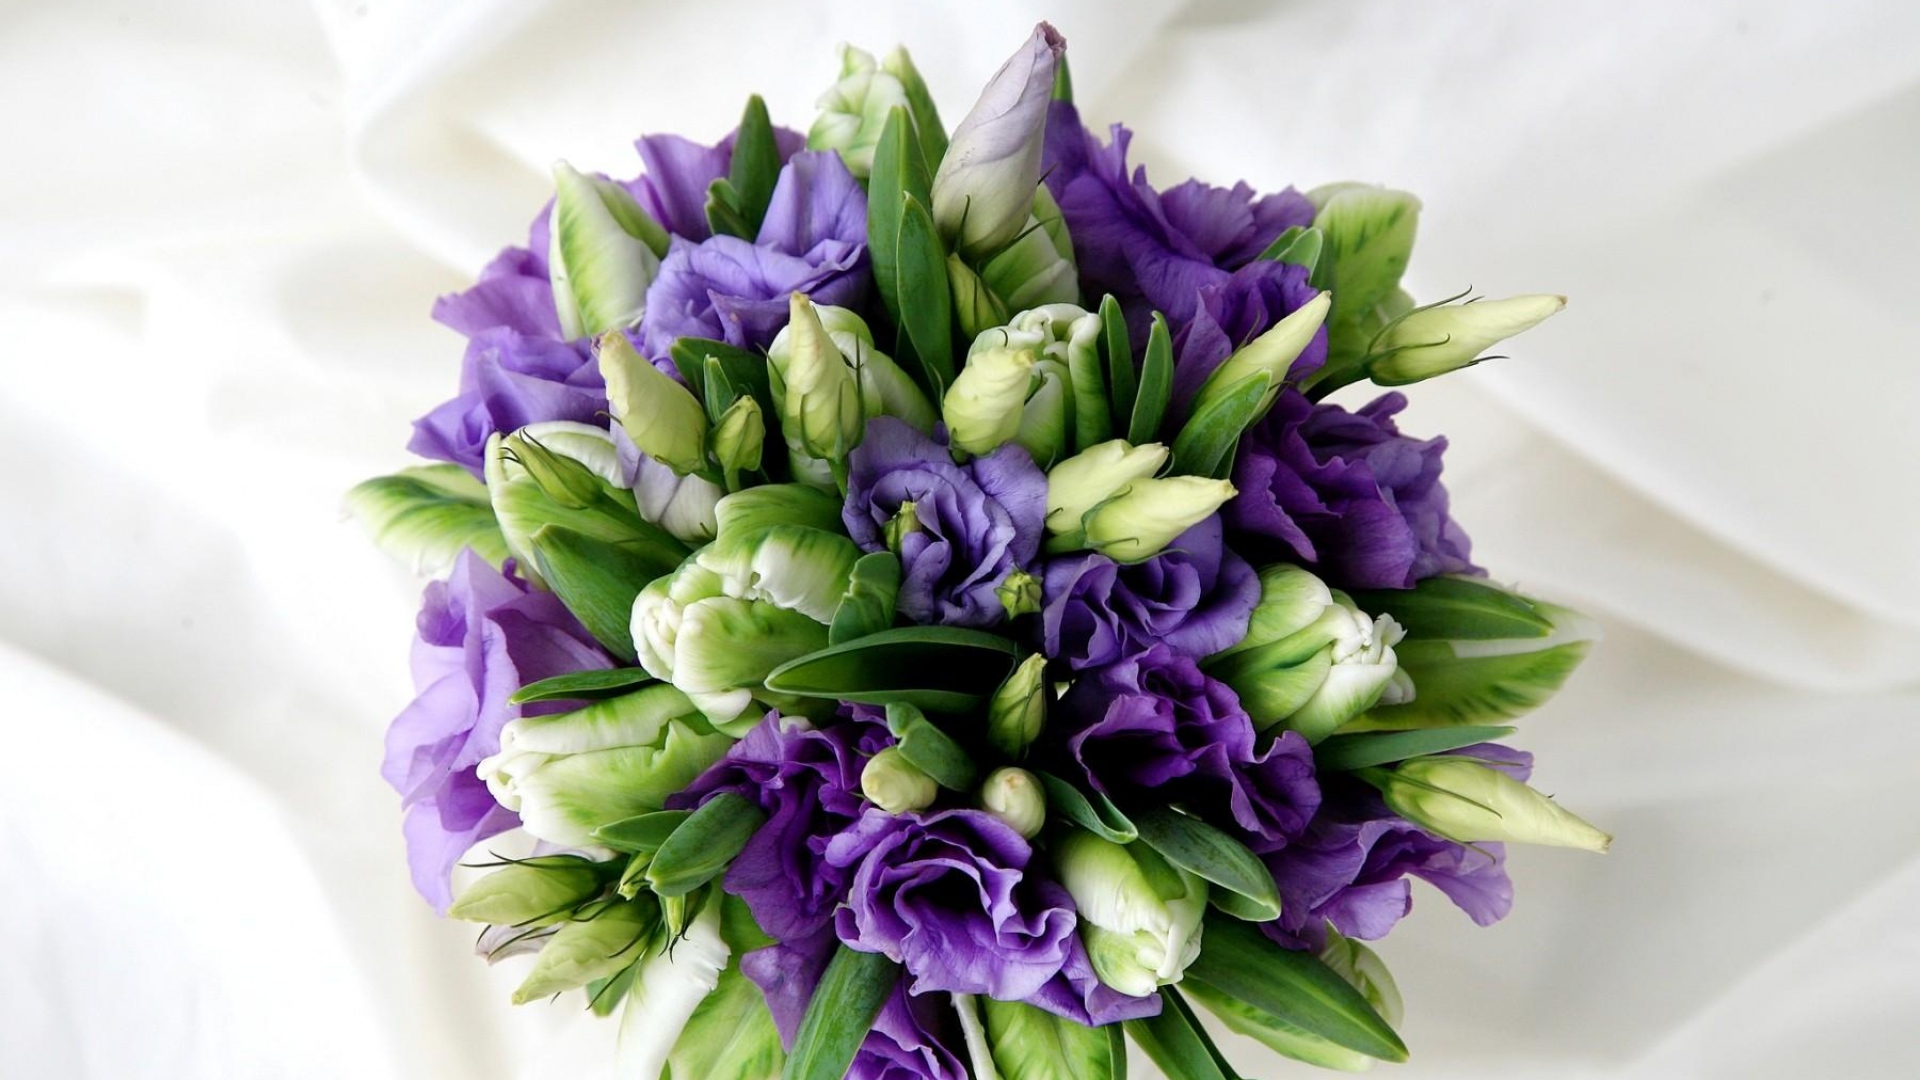 russell-lisianthus-tulips-flowers-bouquet-decoration-1920x1080.jpg